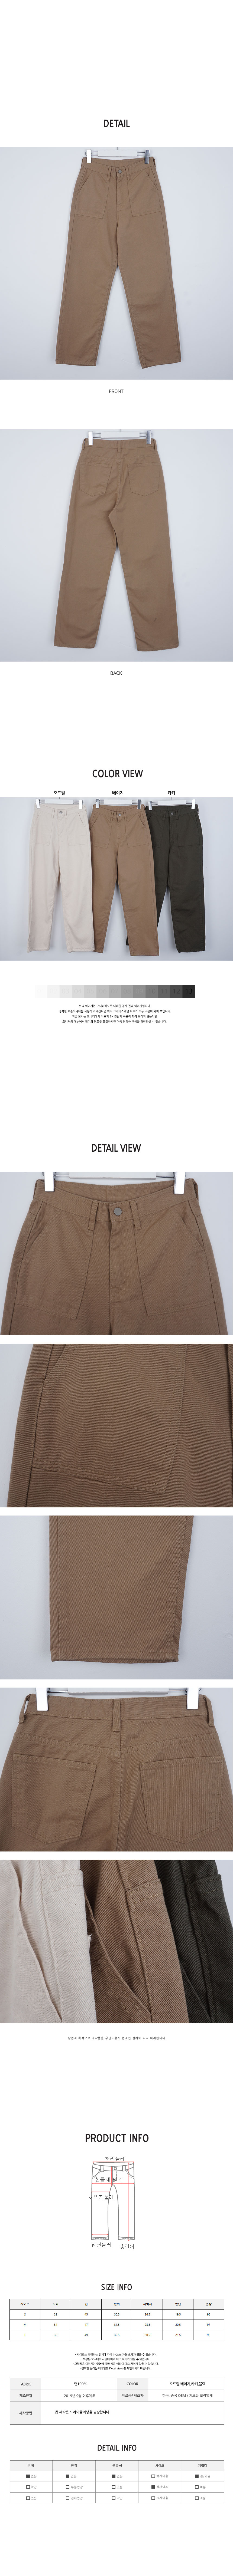 Mud pocket straight pants